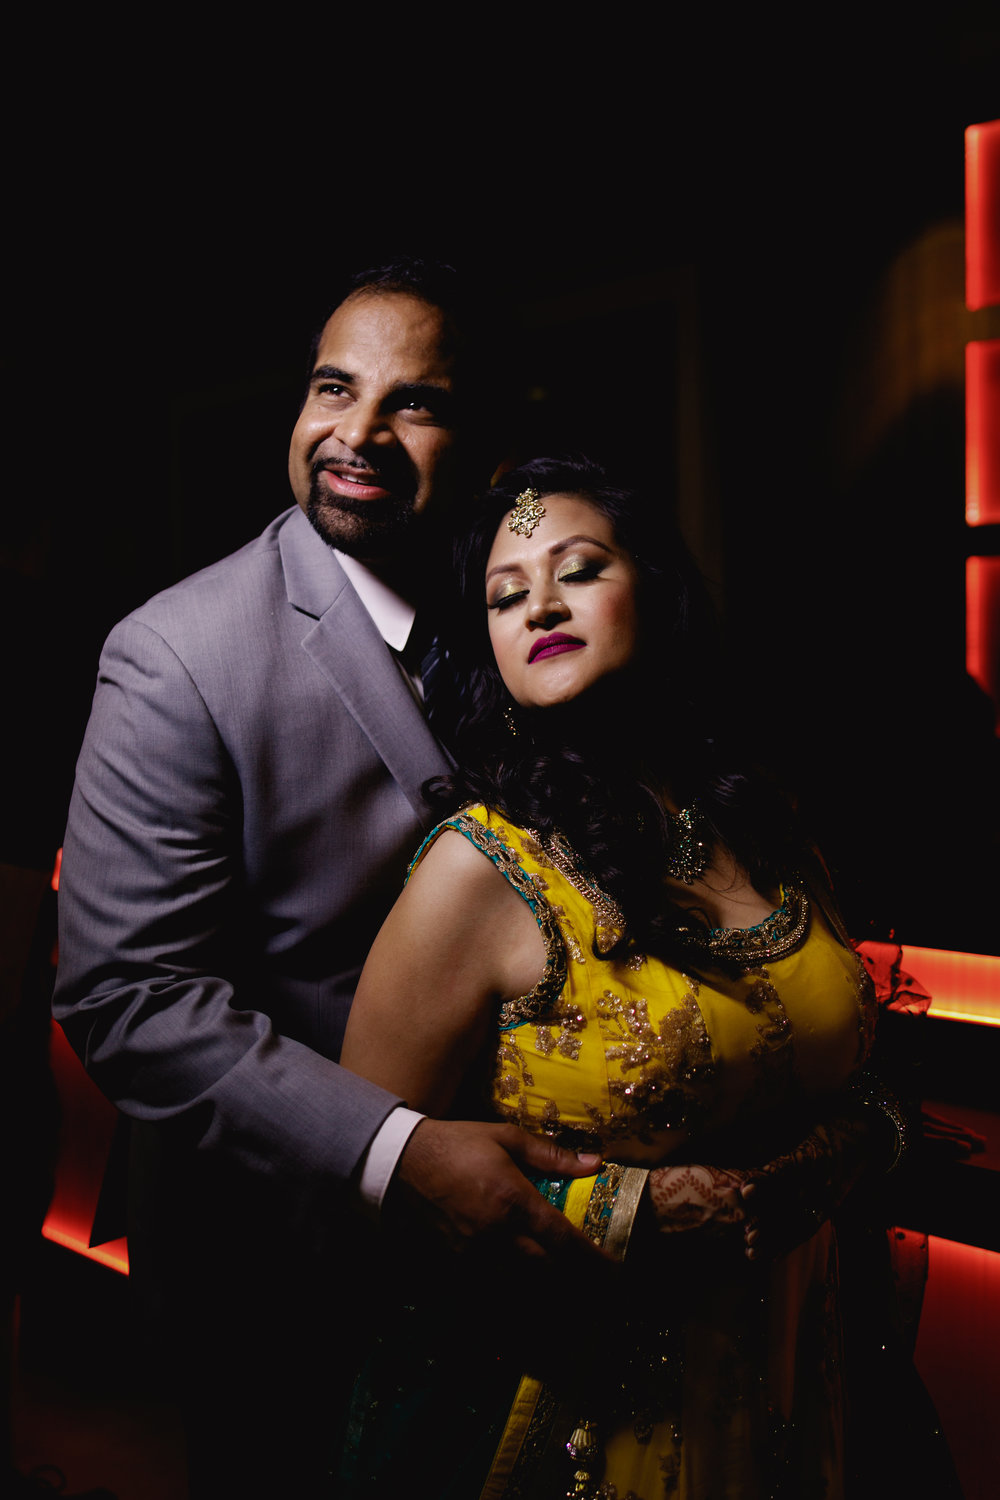 Indian wedding - Wedding photographer - Dallas Photographer - South Asian Wedding -  elizalde photography-108.jpg